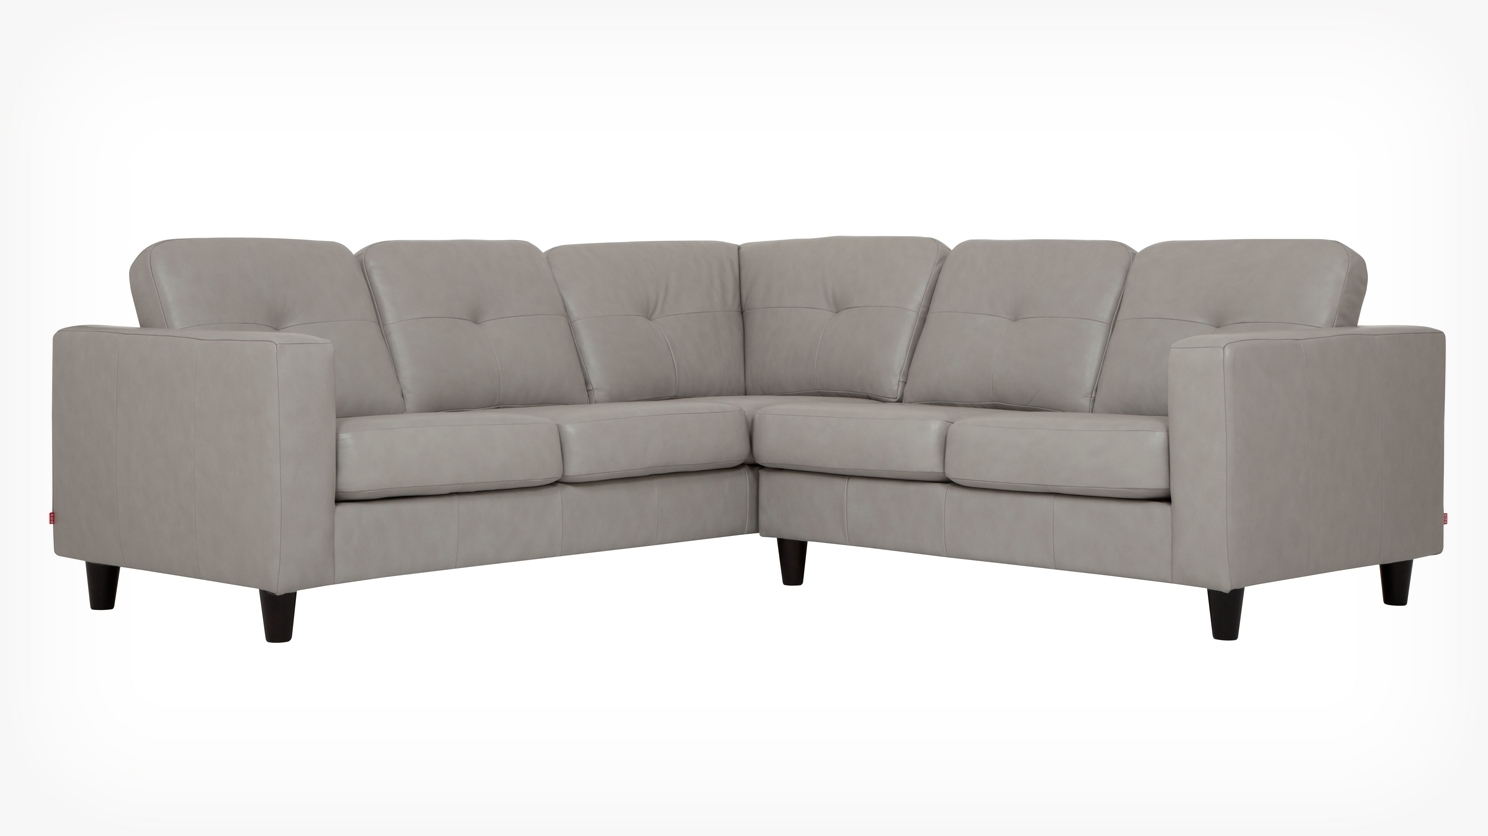 Solo 2 Piece Sectional Sofa – Leather Intended For Eq3 Sectional Sofas (View 18 of 20)